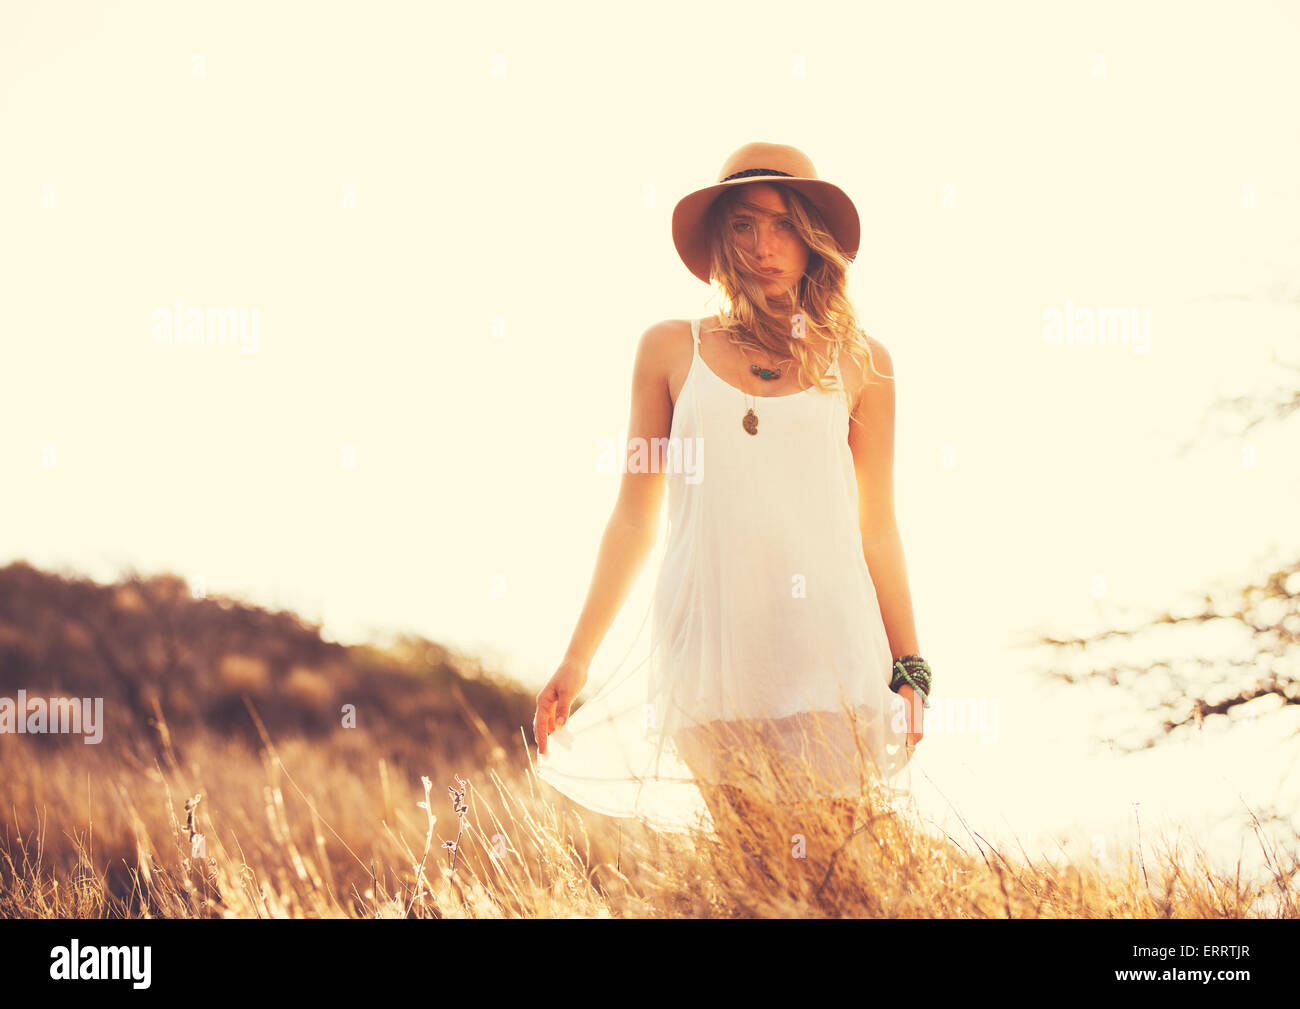 Fashion Lifestyle. Fashion Portrait of Beautiful Young Woman Outdoors. Soft warm vintage color tone. Artsy Bohemian - Stock Image